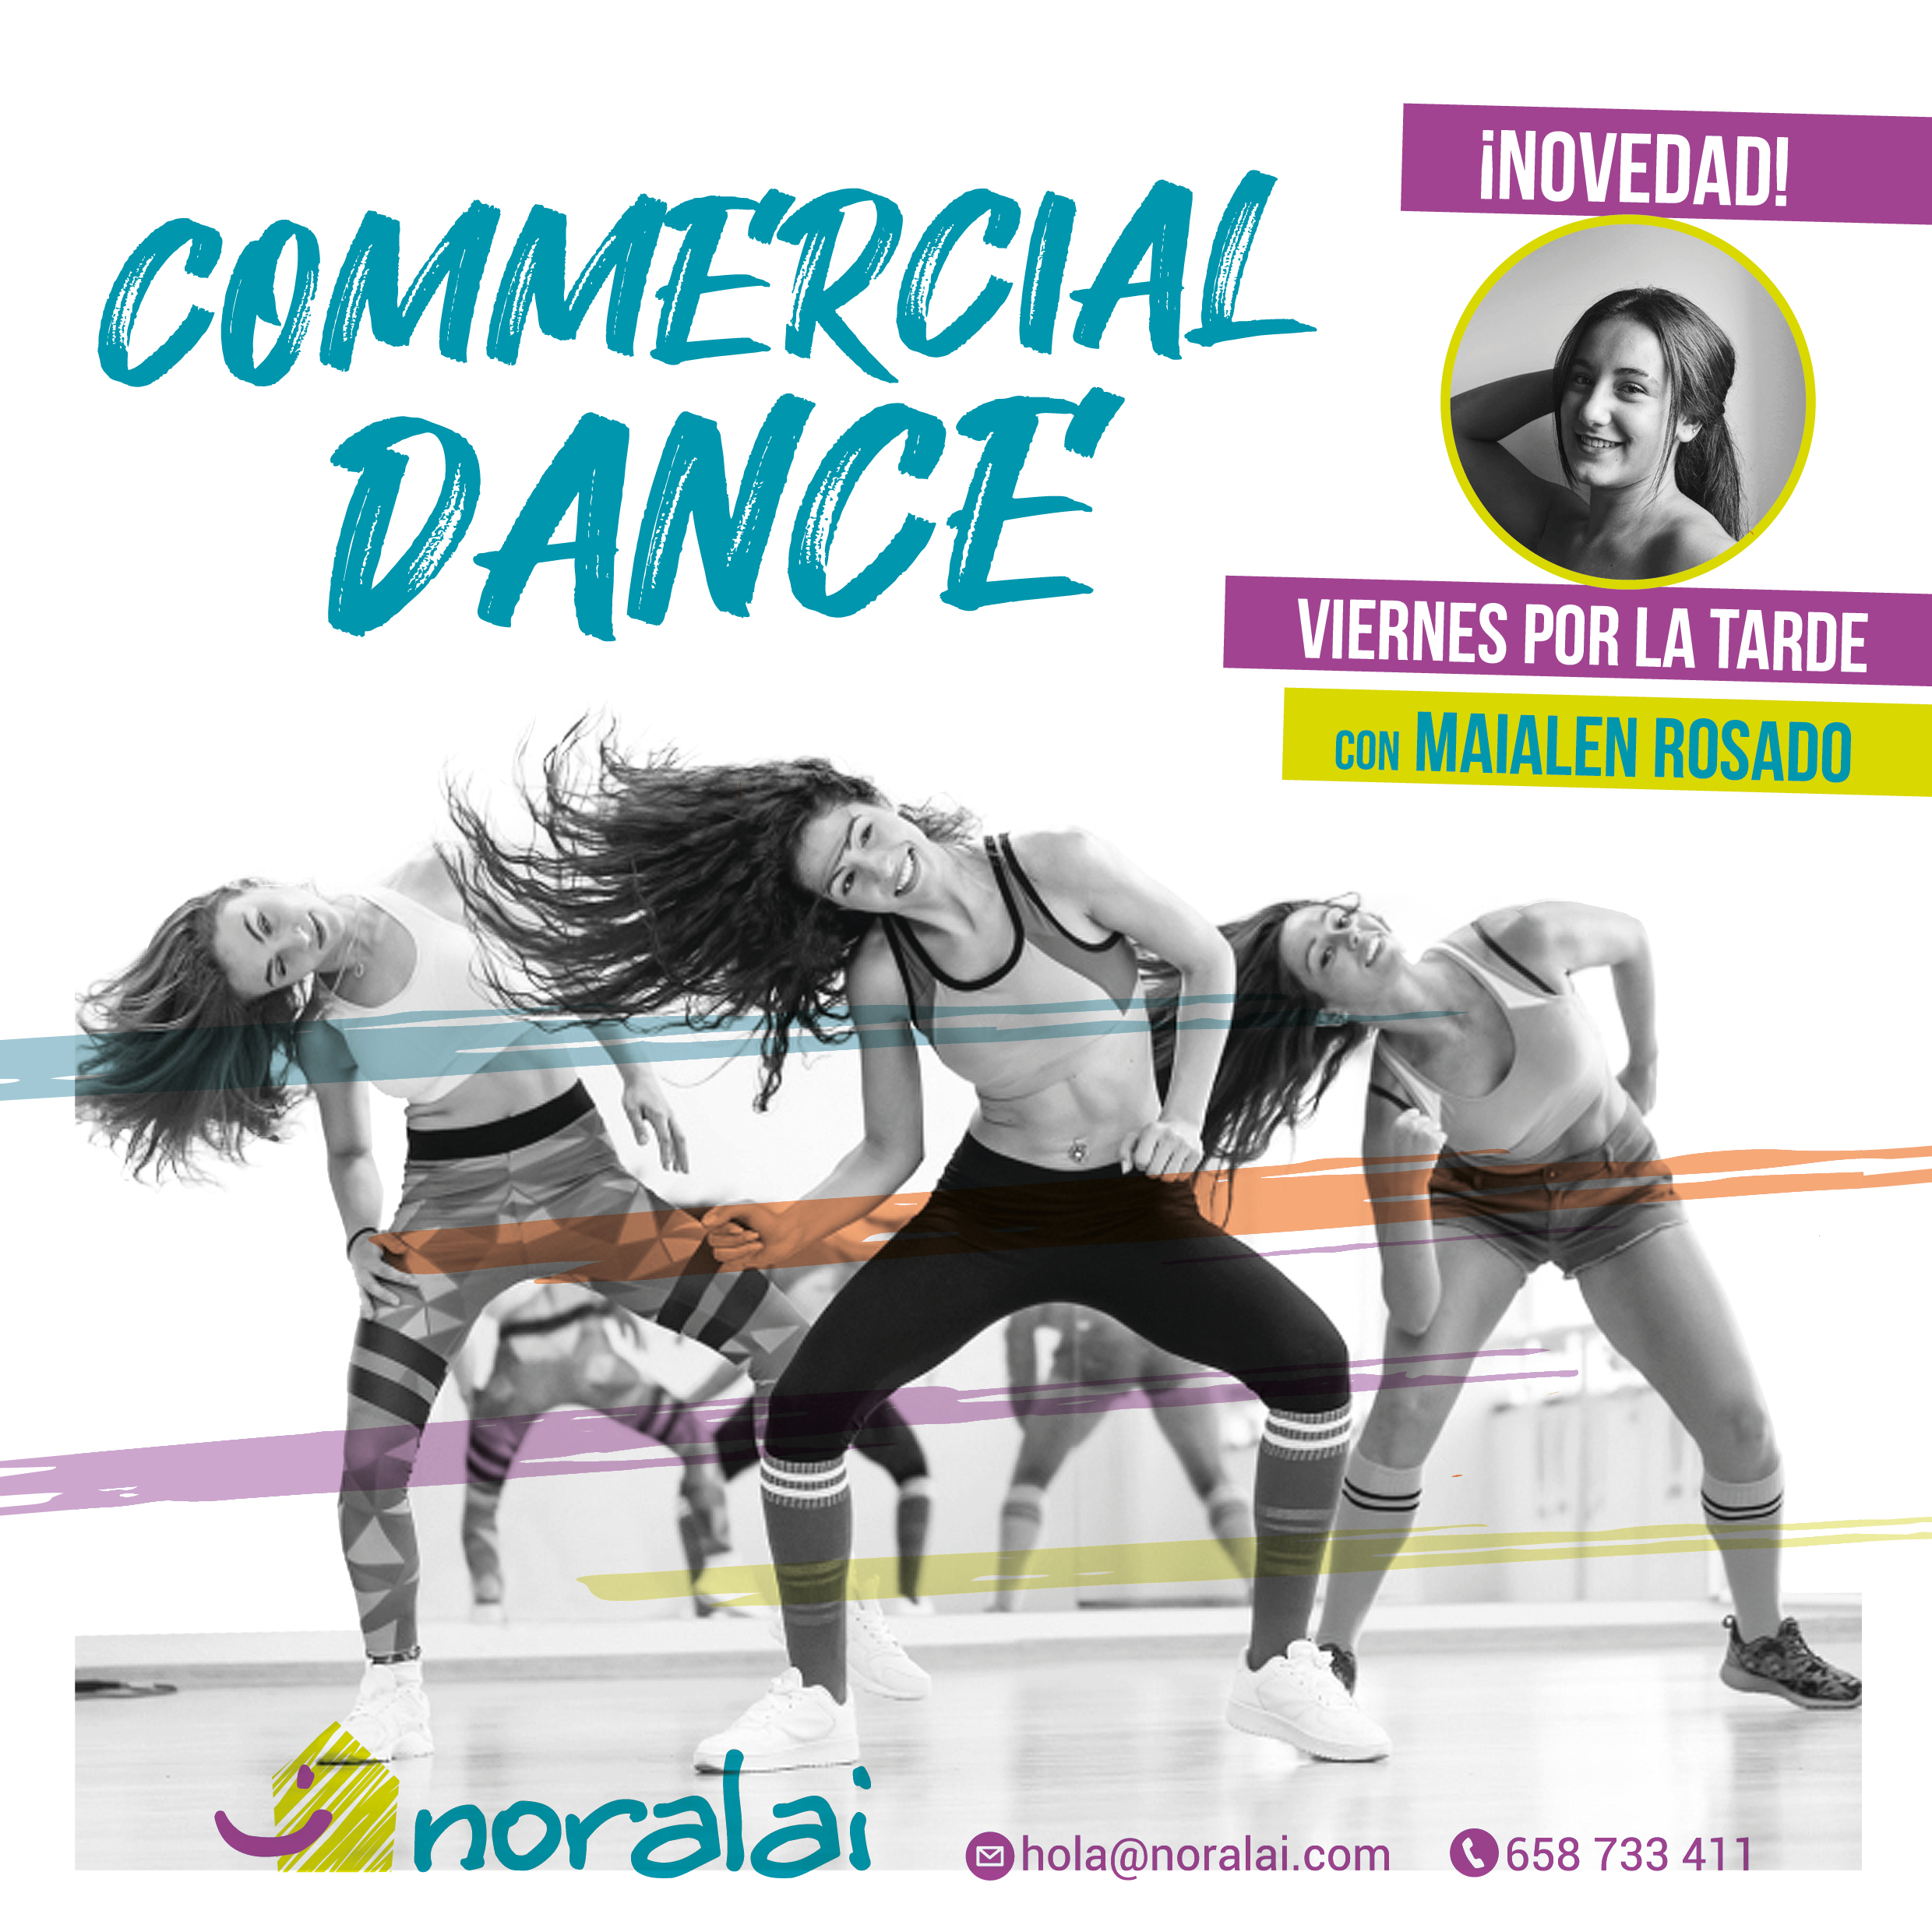 COMMERCIAL DANCE